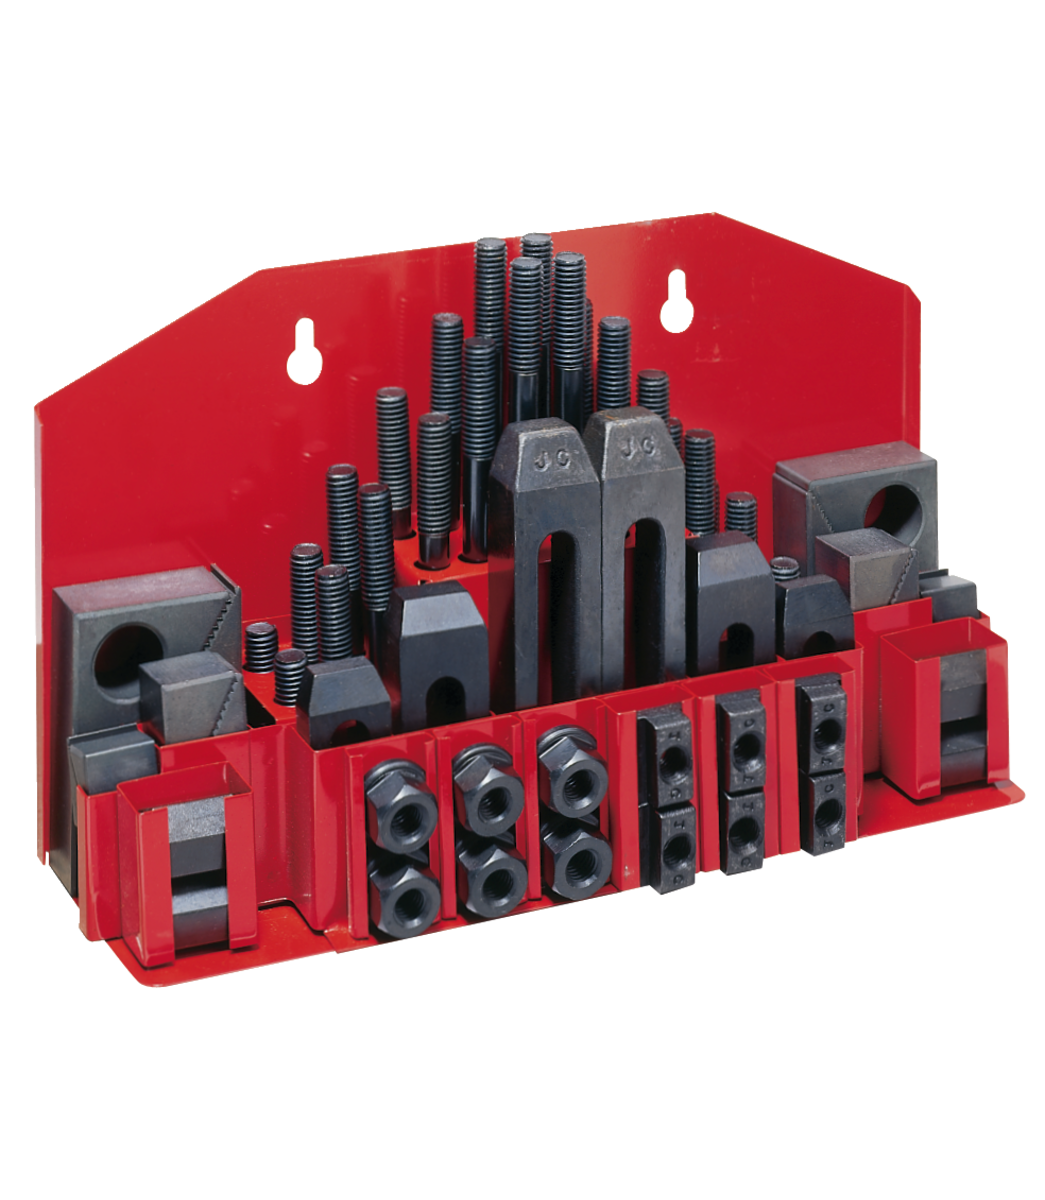 """CK-58, 58-Piece Clamping Kit with Tray for 3/4"""" T-Slot"""